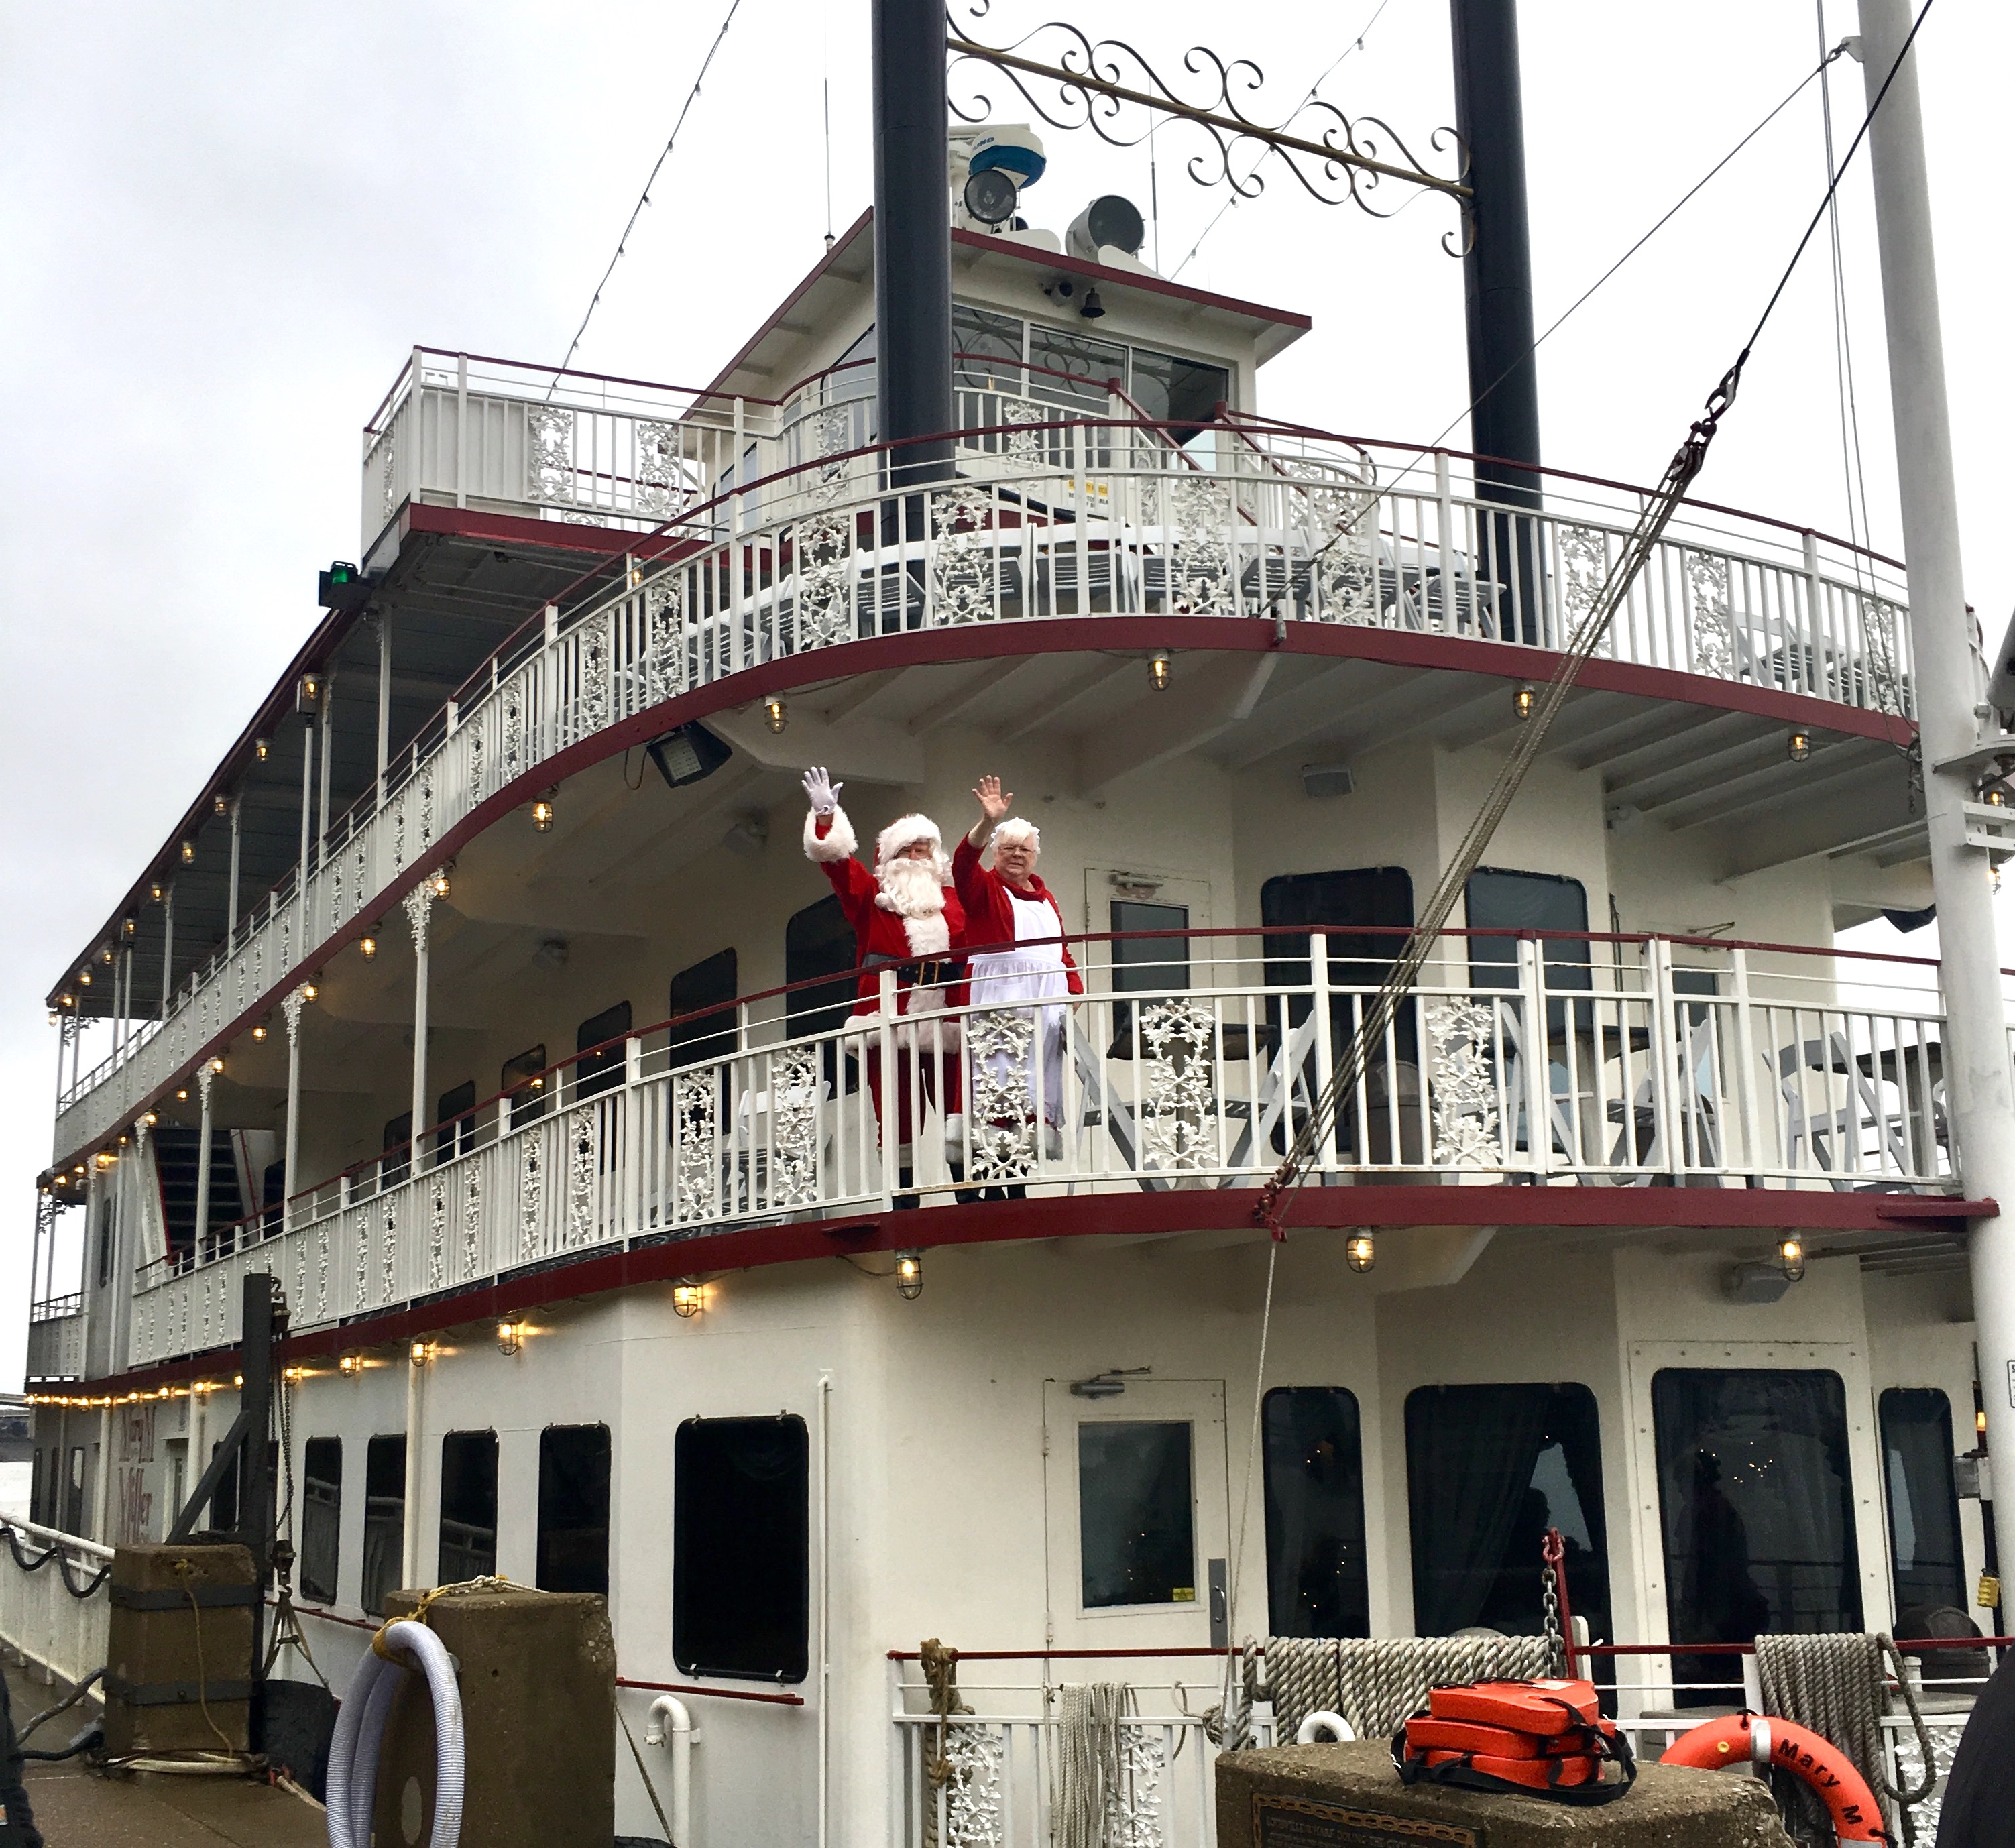 Brunch with Santa on the Mary M Miller Belle of Louisville - Circle City Adventure Kids